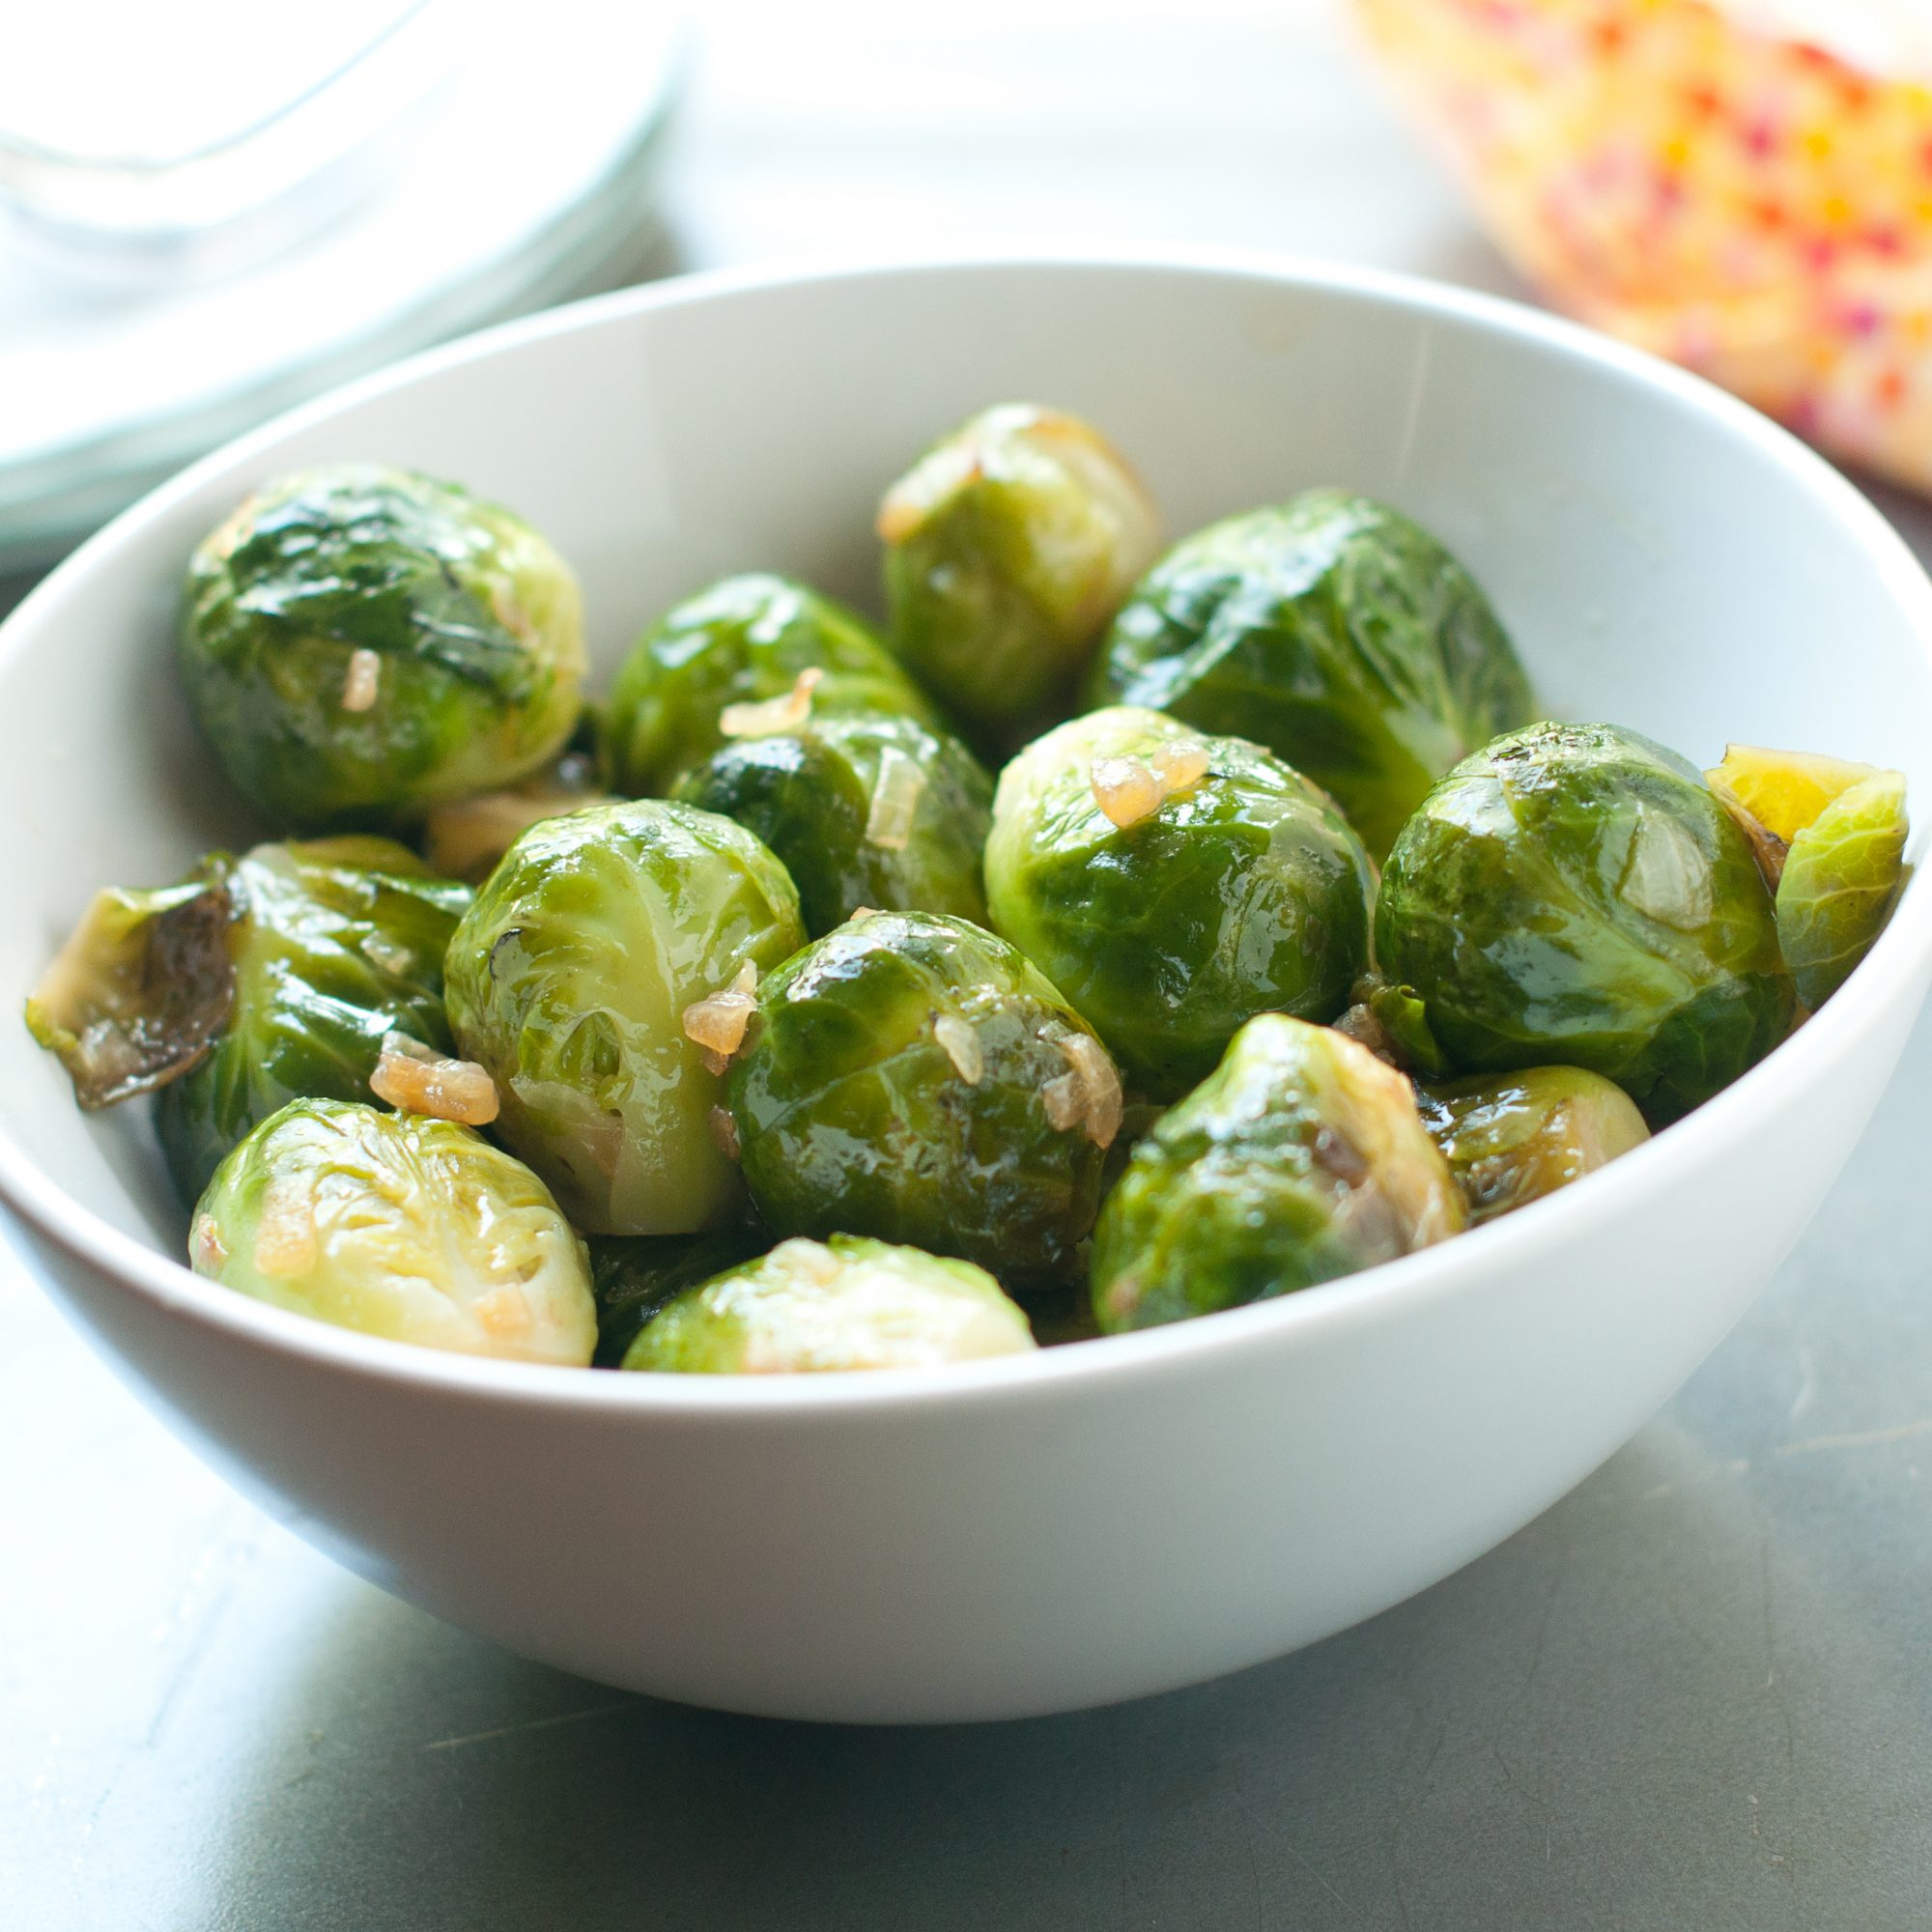 Brussels sprouts in white bowl